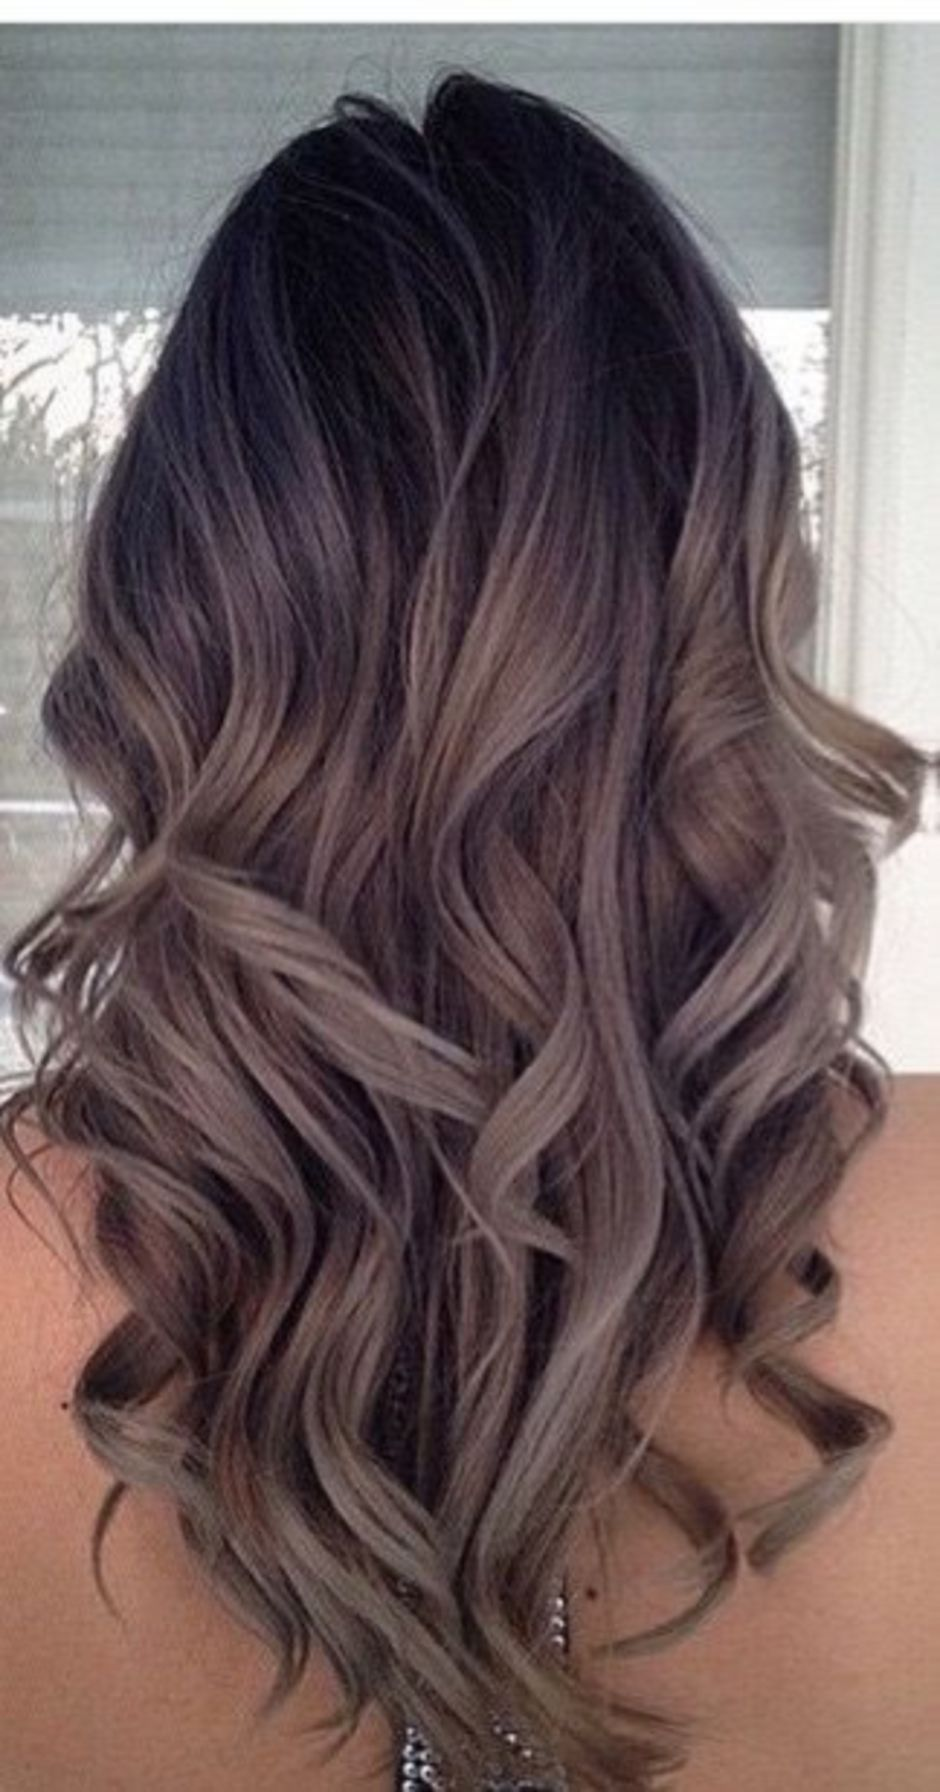 18 Cool and Stunning Mushroom Brown Hair Coloring Ideas | Haircut ...